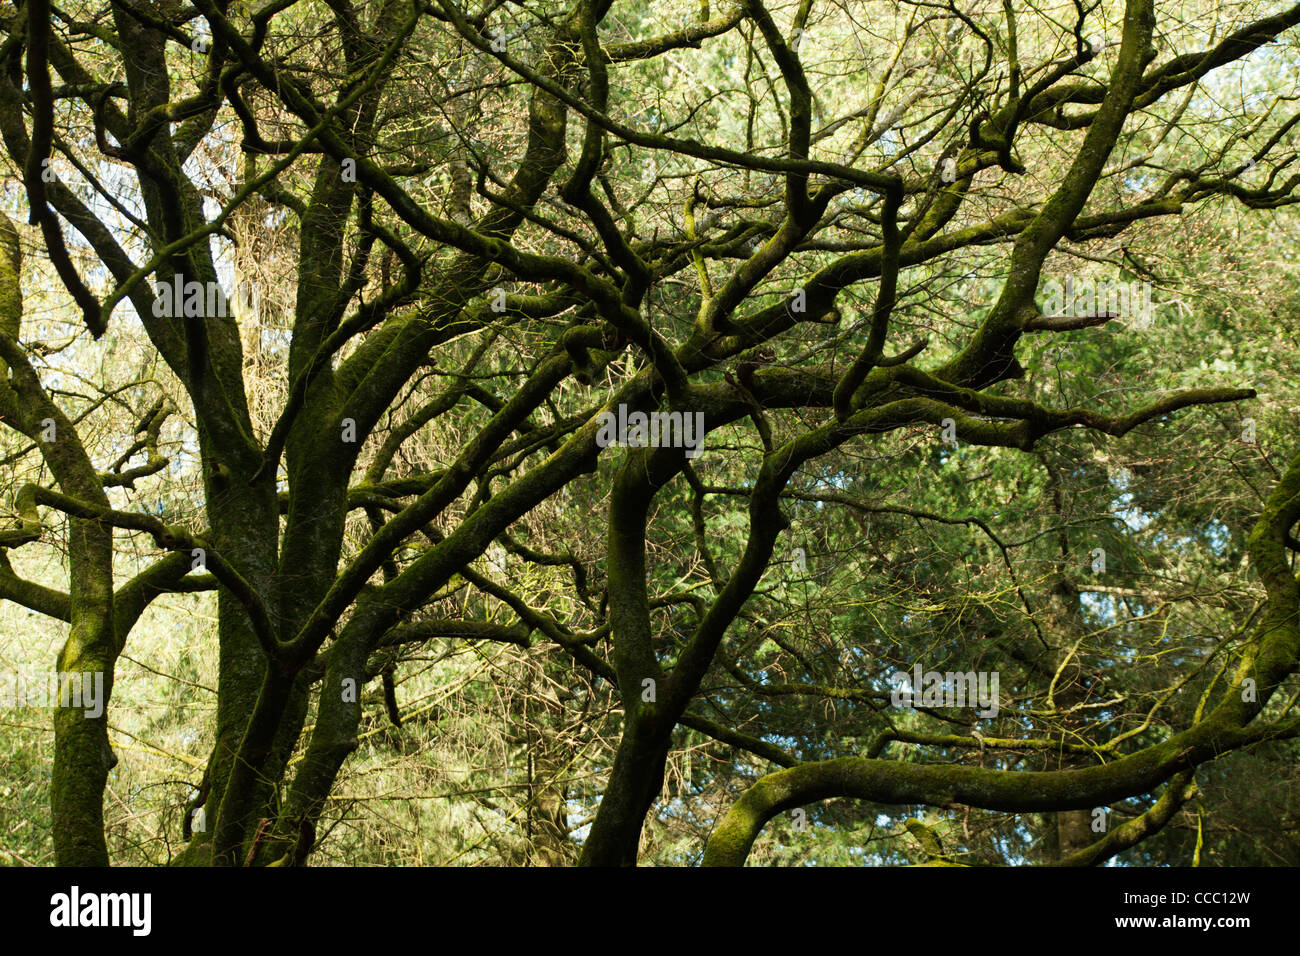 Tree branches covered in moss - Stock Image